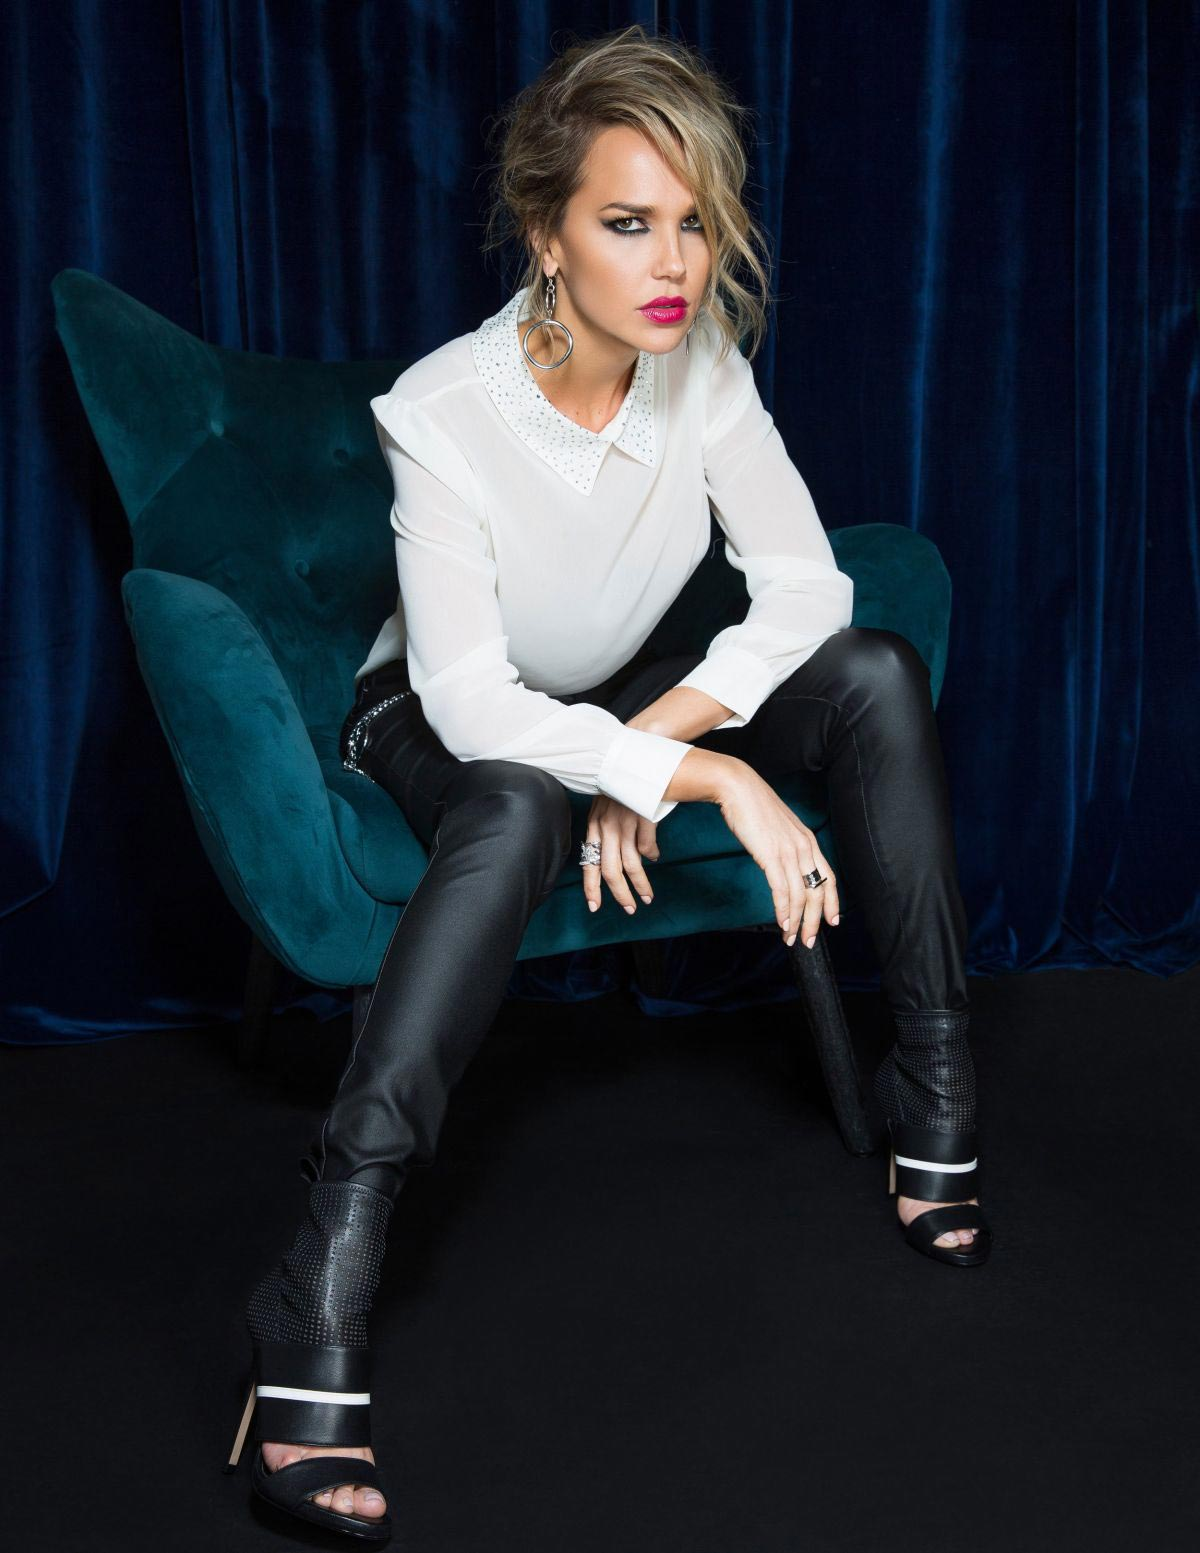 Arielle Kebbel in Bello Magazine, November 2018 1